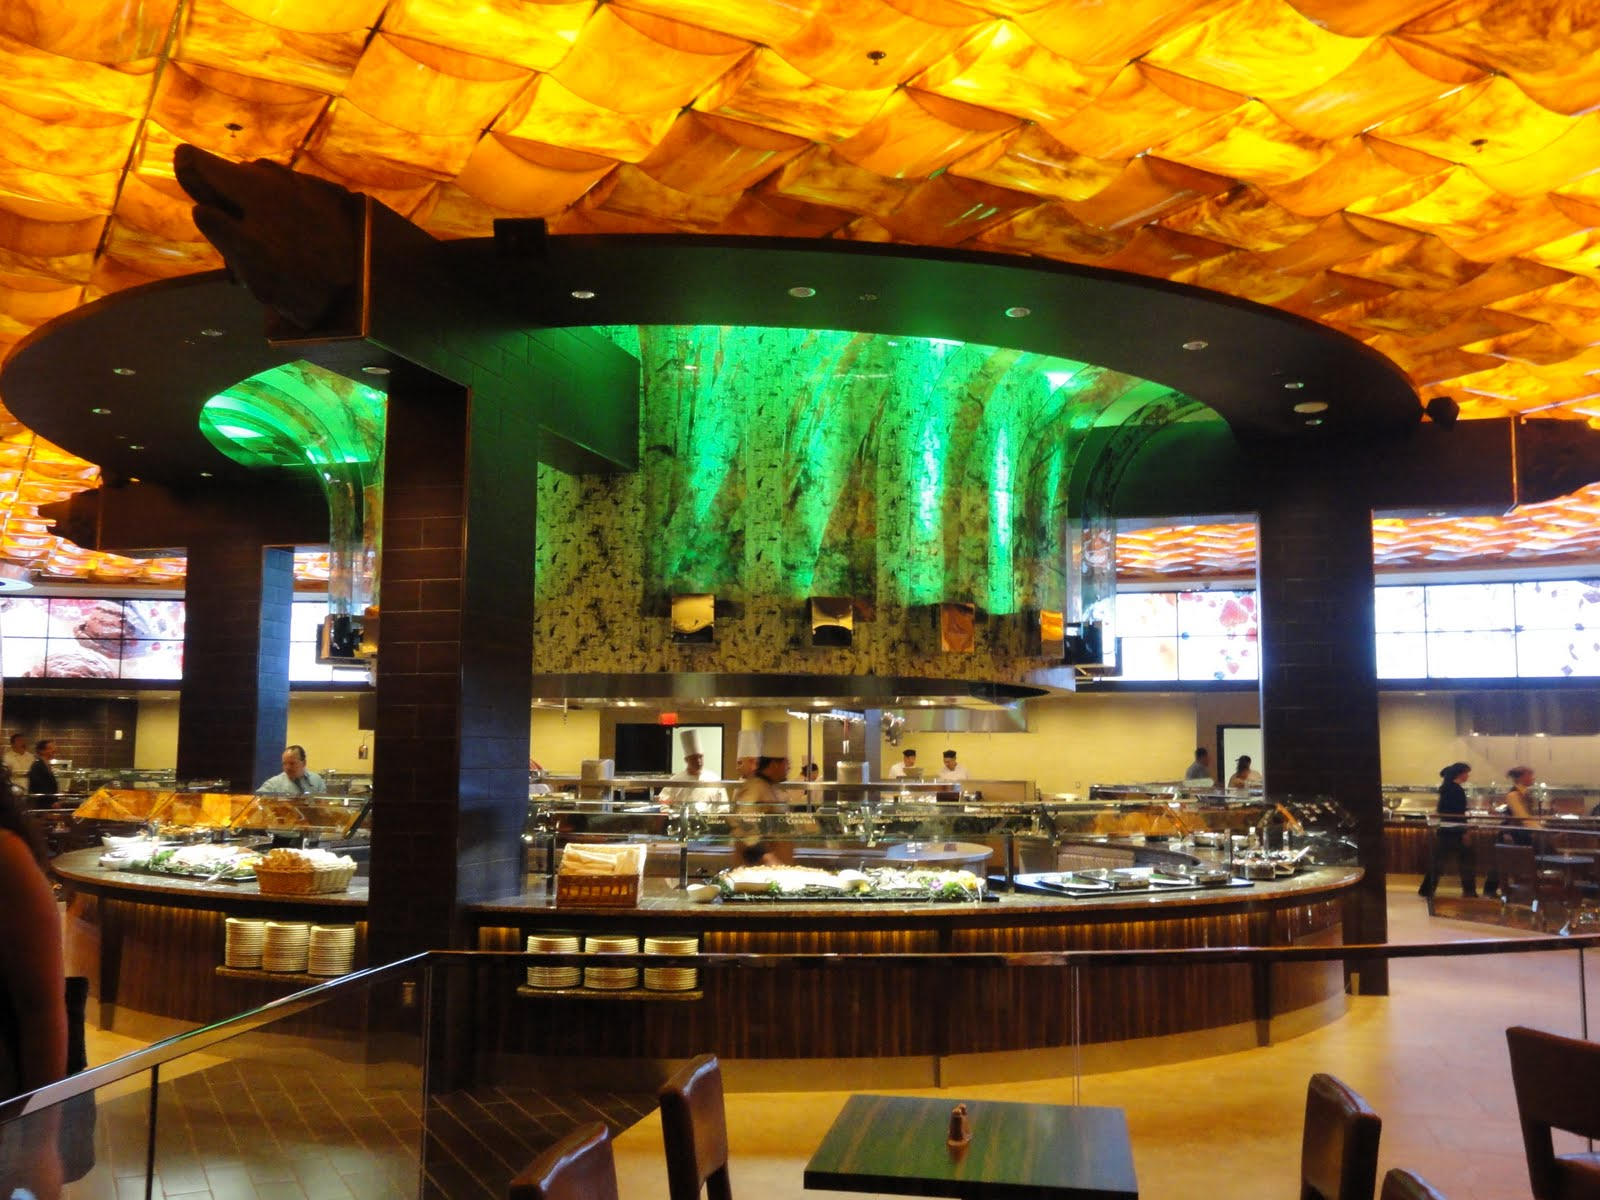 the passionate foodie mohegan sun seasons buffet a new start rh passionatefoodie blogspot com seasons buffet mohegan sun prices seasons buffet mohegan sun phone number